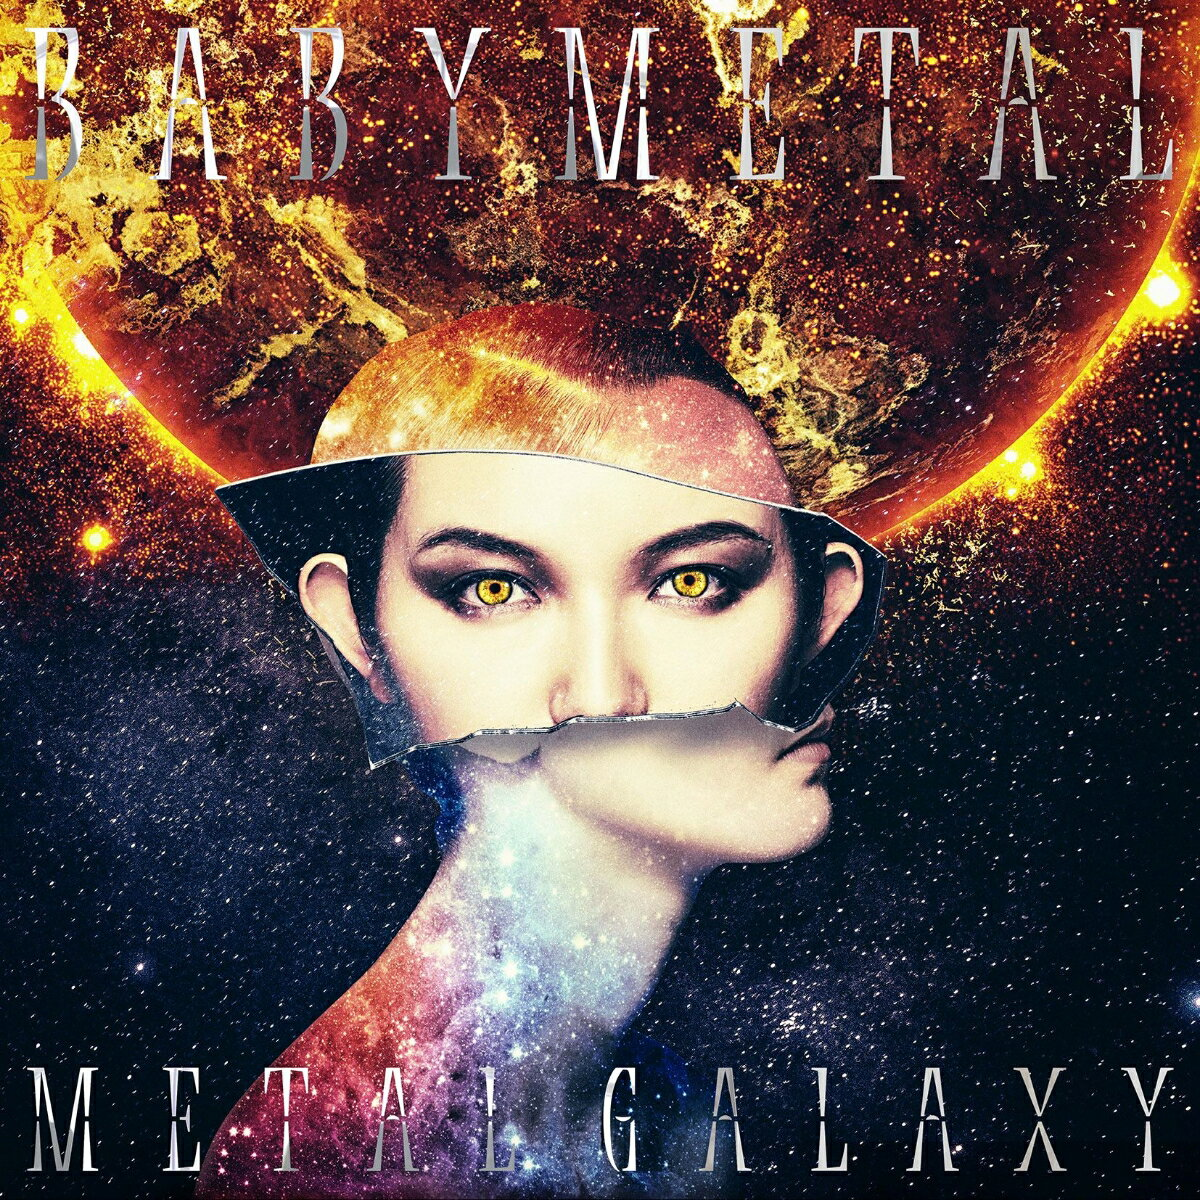 ロック・ポップス, その他 METAL GALAXY (SUN - Japan Complete Edition - 2CD) () BABYMETAL